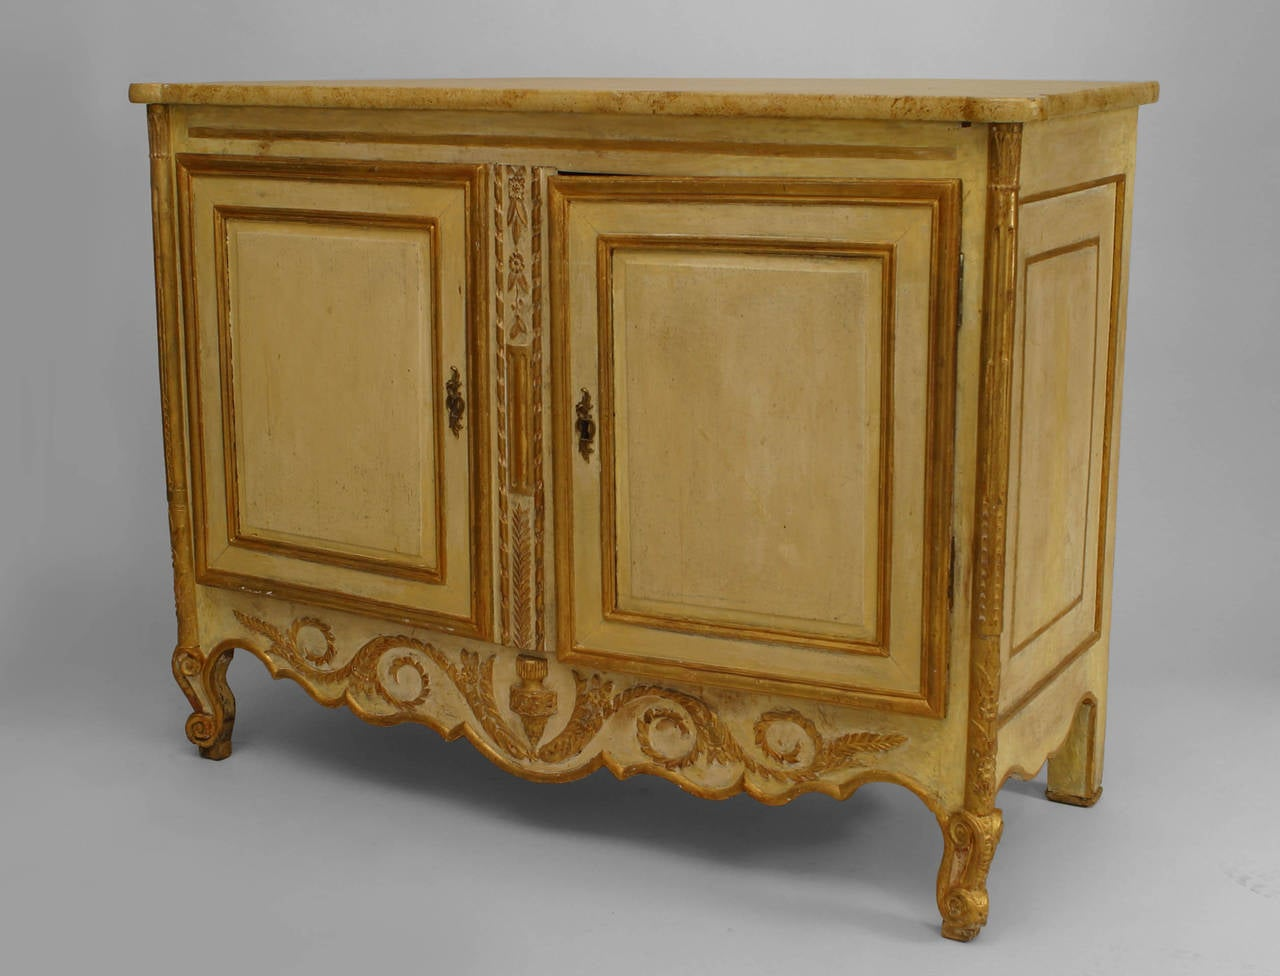 Neoclassical Late 18th or Early 19th Century Italian Gilt-Trimmed Commode For Sale